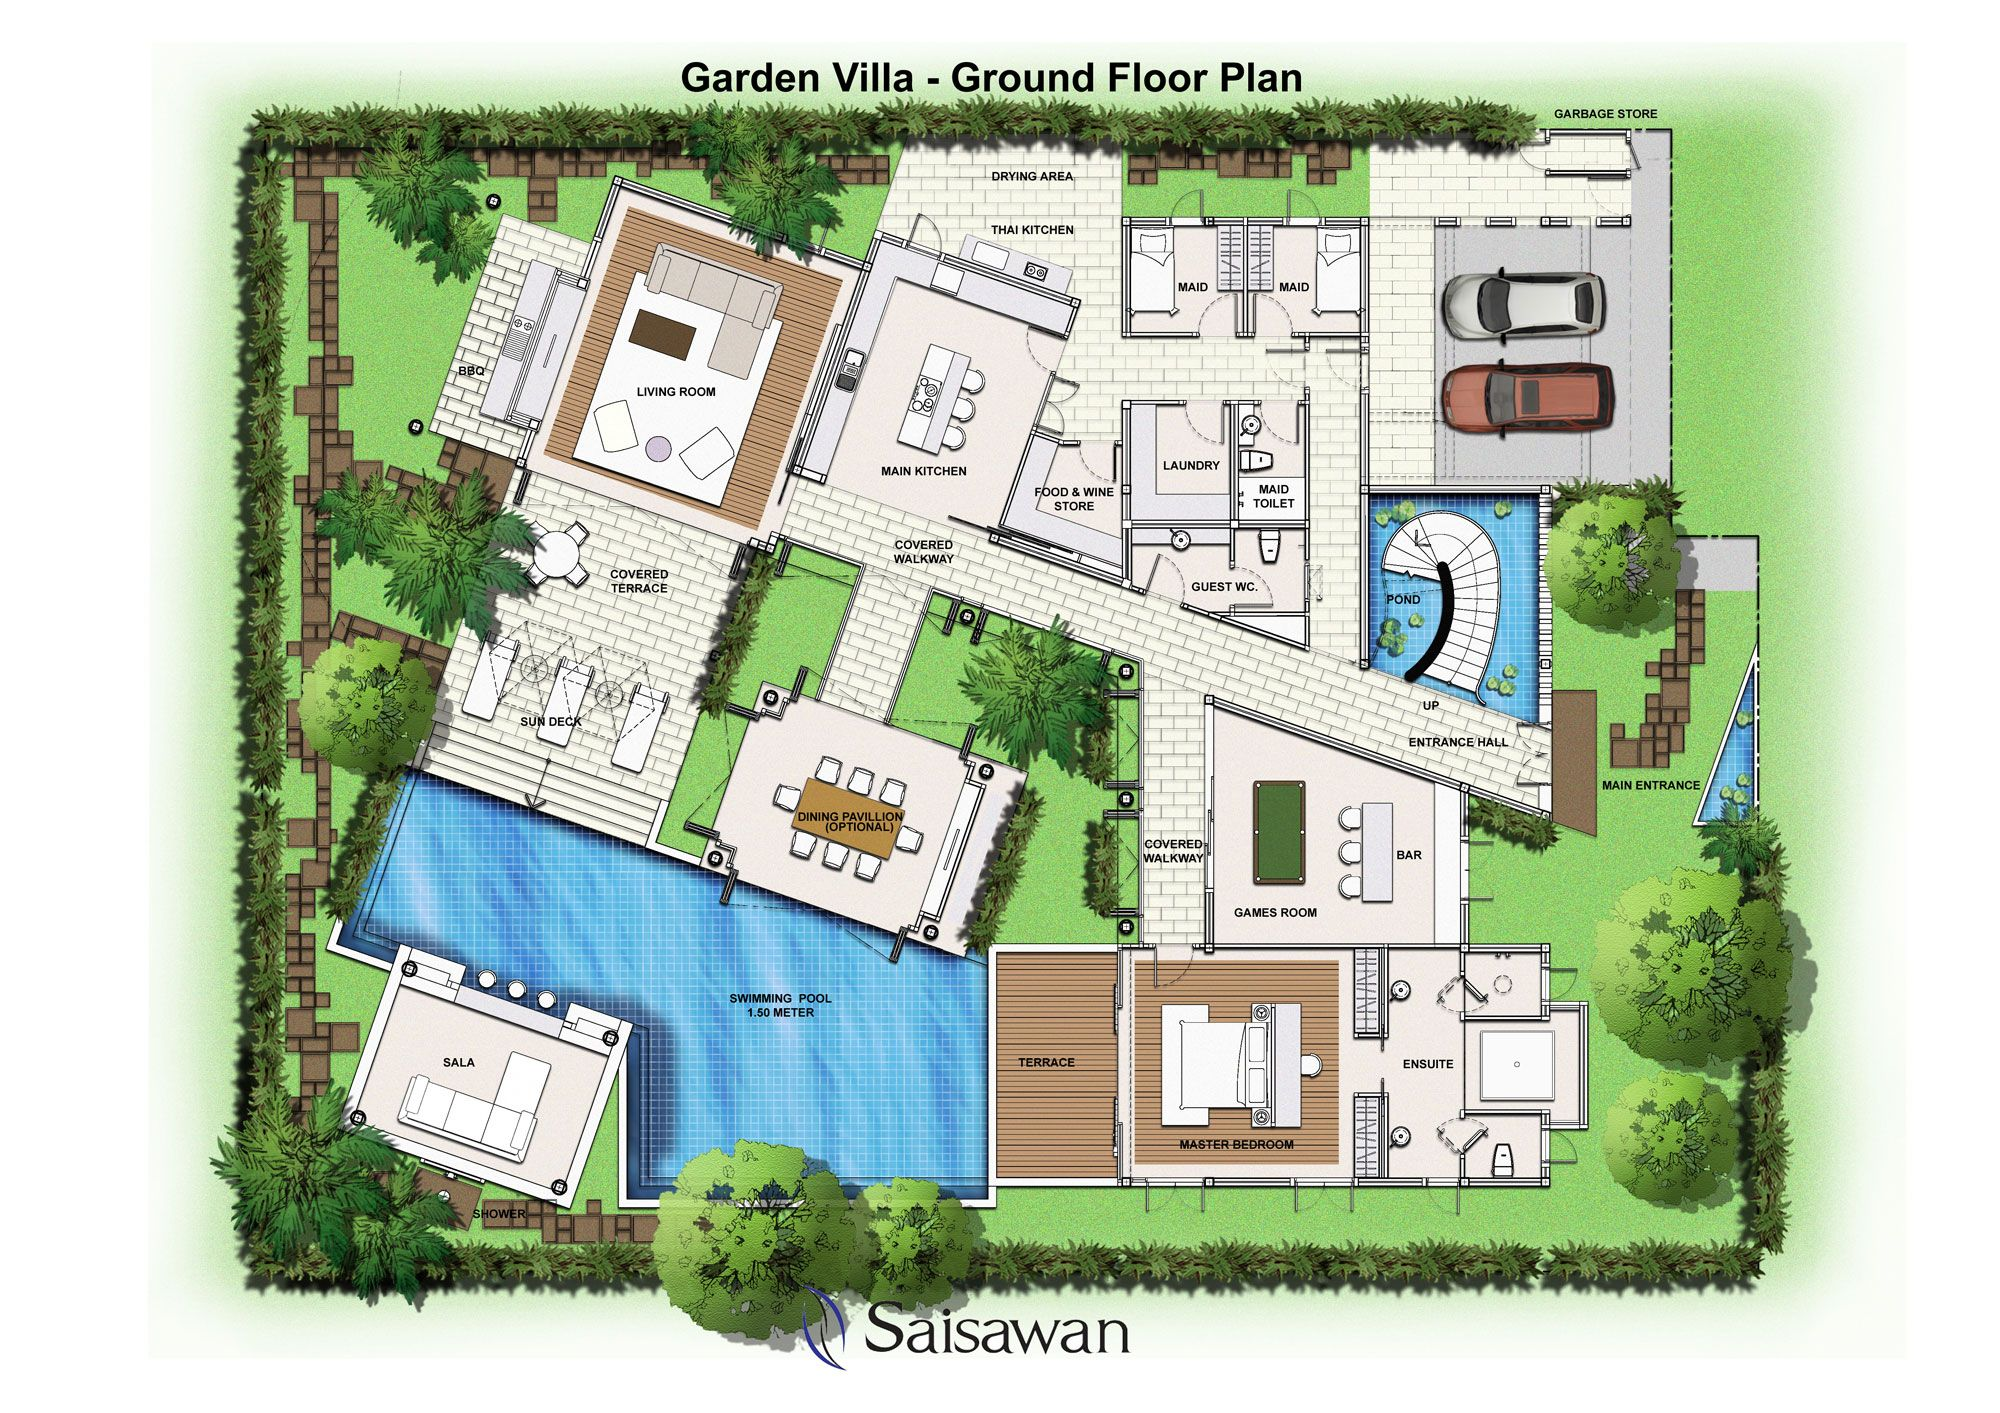 Saisawan garden villas ground floor plan house plans for Garden design for house